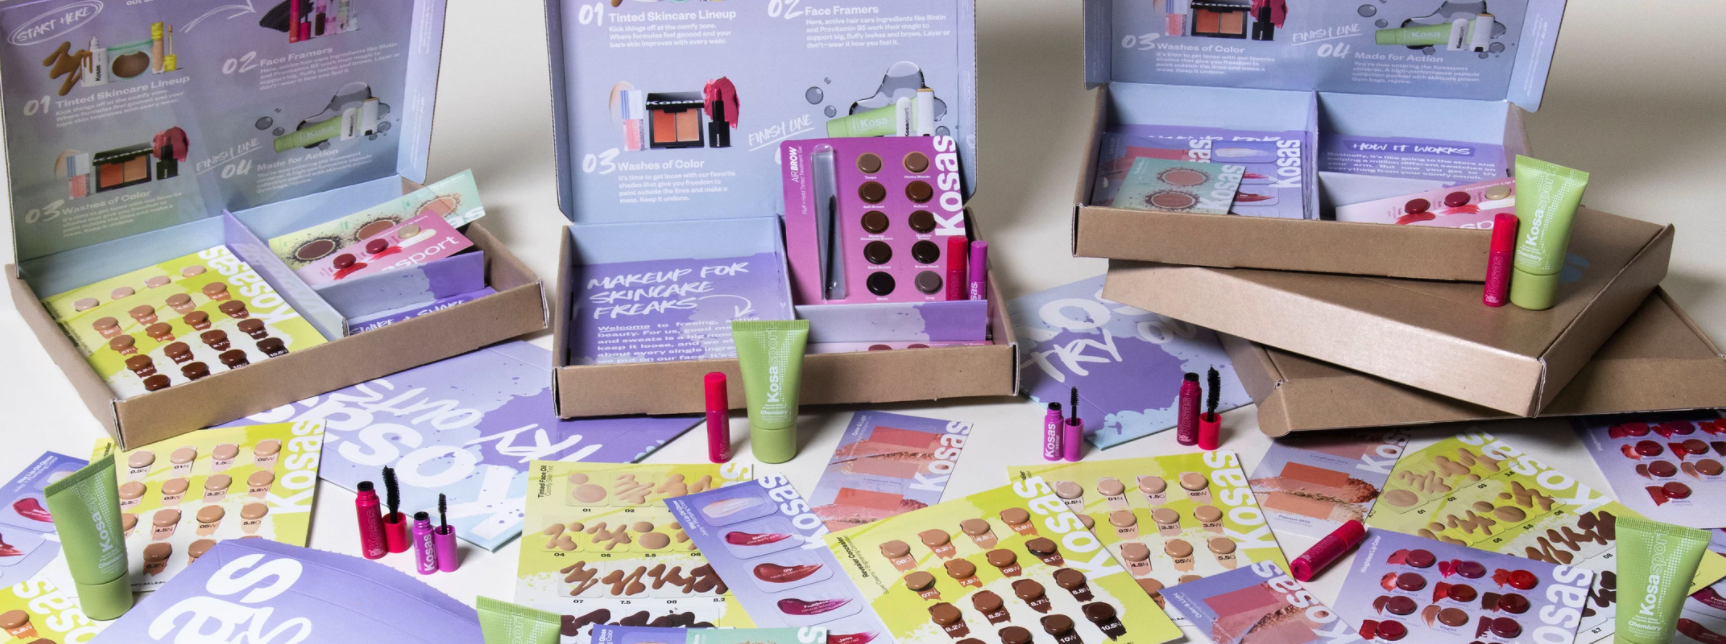 A Kosas Tryouts Kit showing different colorful samples you can try from home and swatch on your arms to find your shades